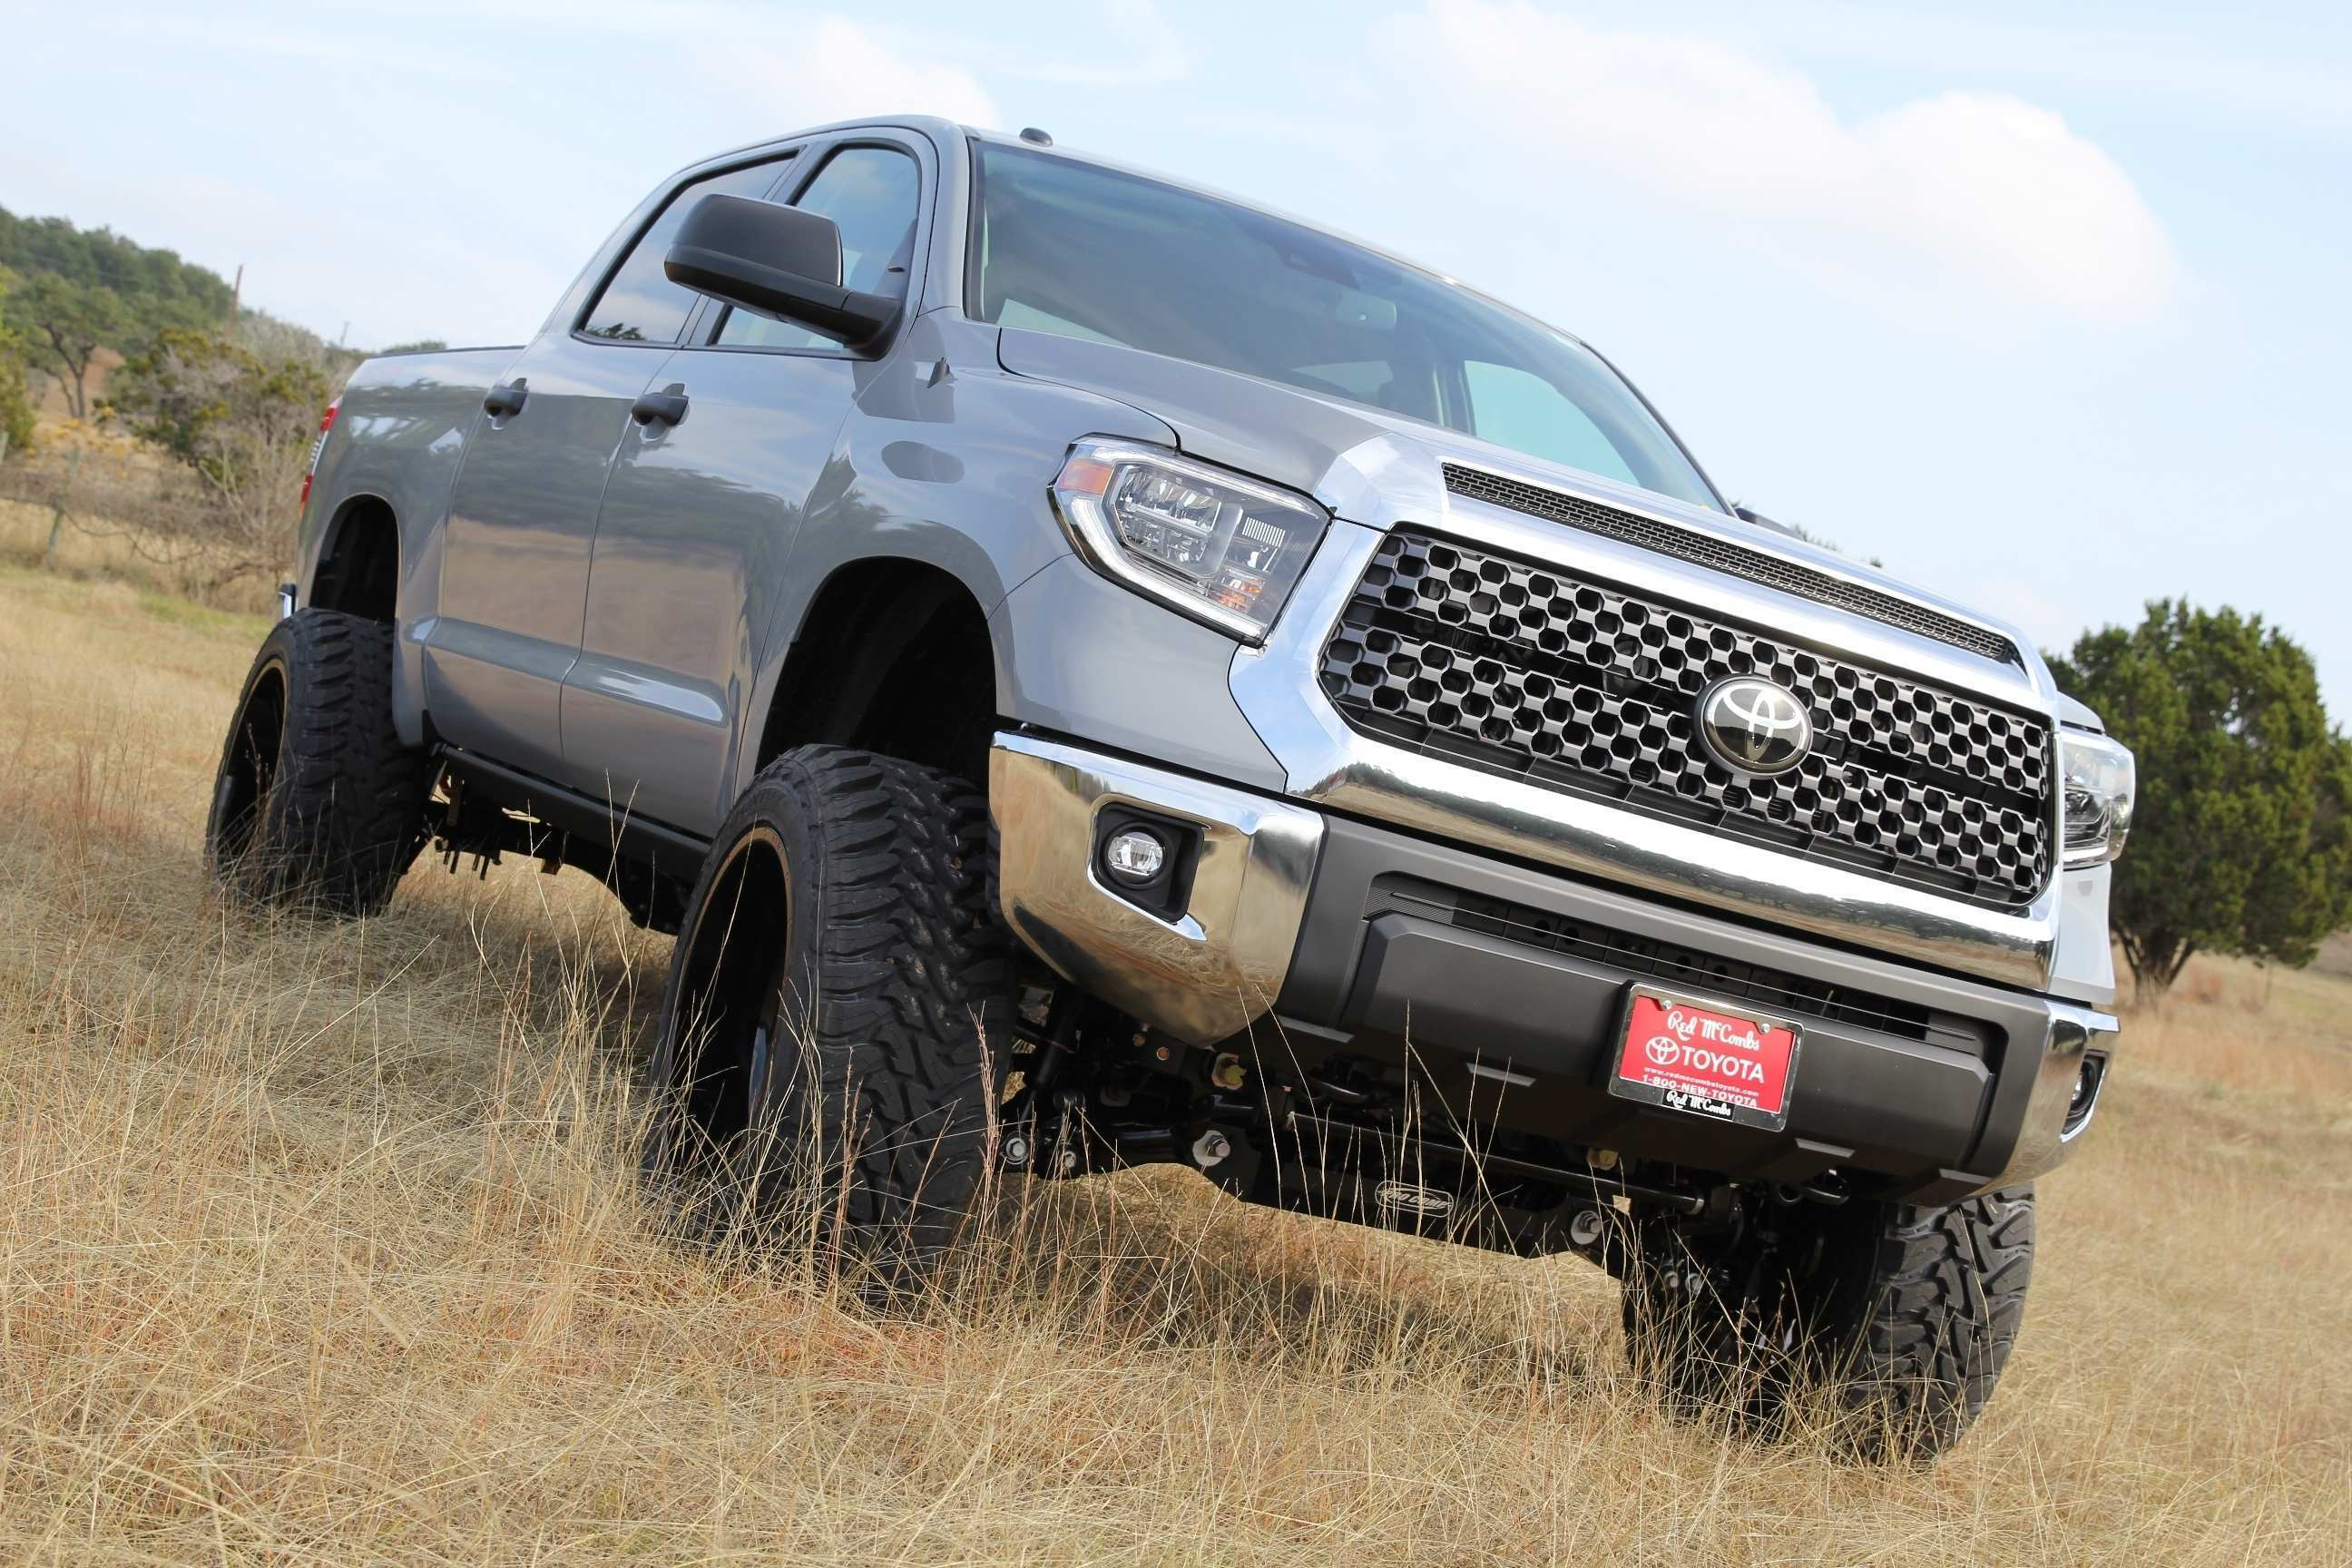 18 Gallery of New 2019 Toyota Tundra Release Date Price And Review Price and Review with New 2019 Toyota Tundra Release Date Price And Review